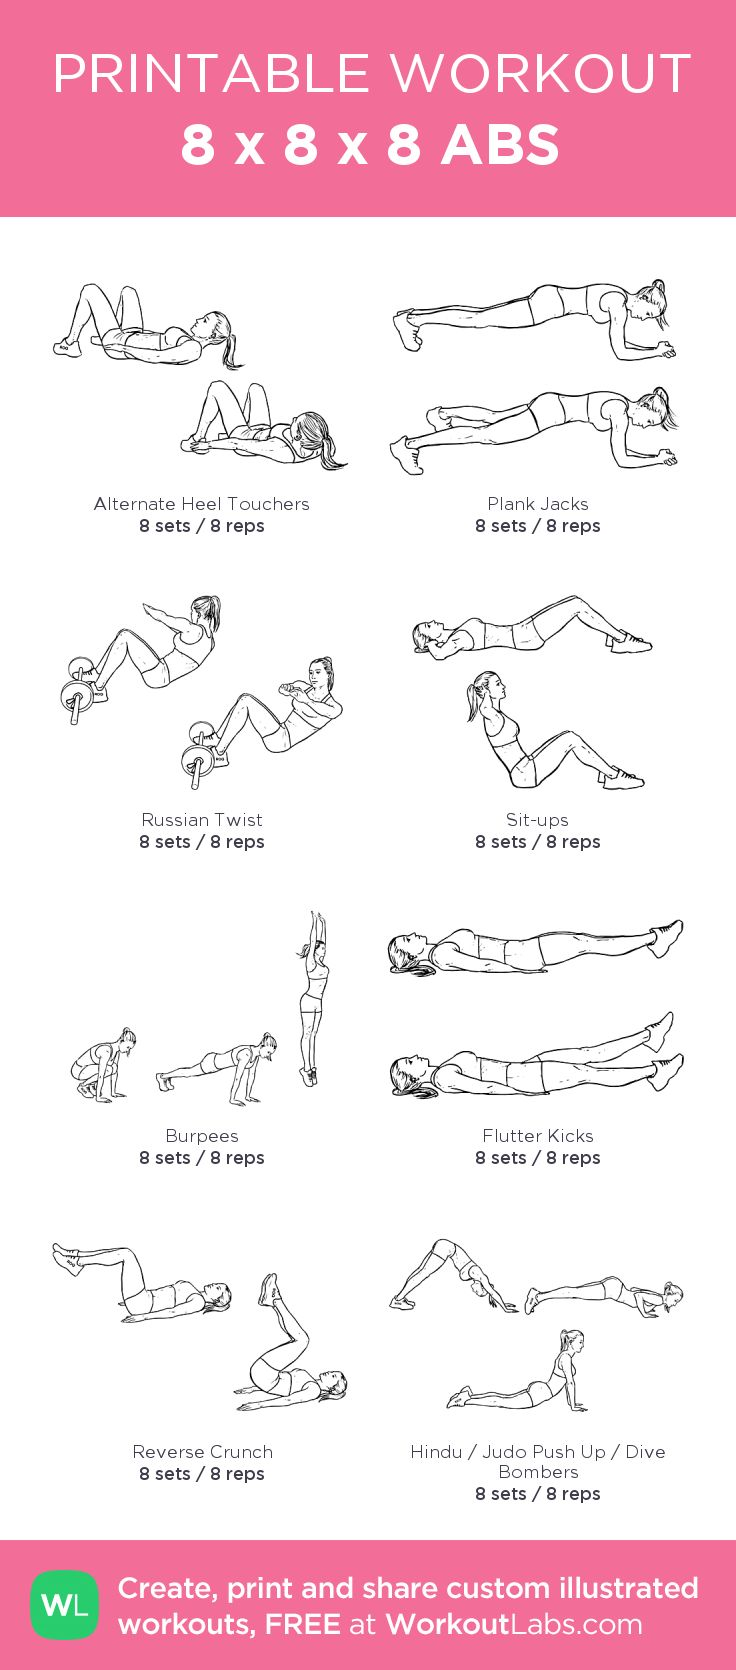 8 x 8 x 8 ABS: my custom printable workout by @WorkoutLabs ...